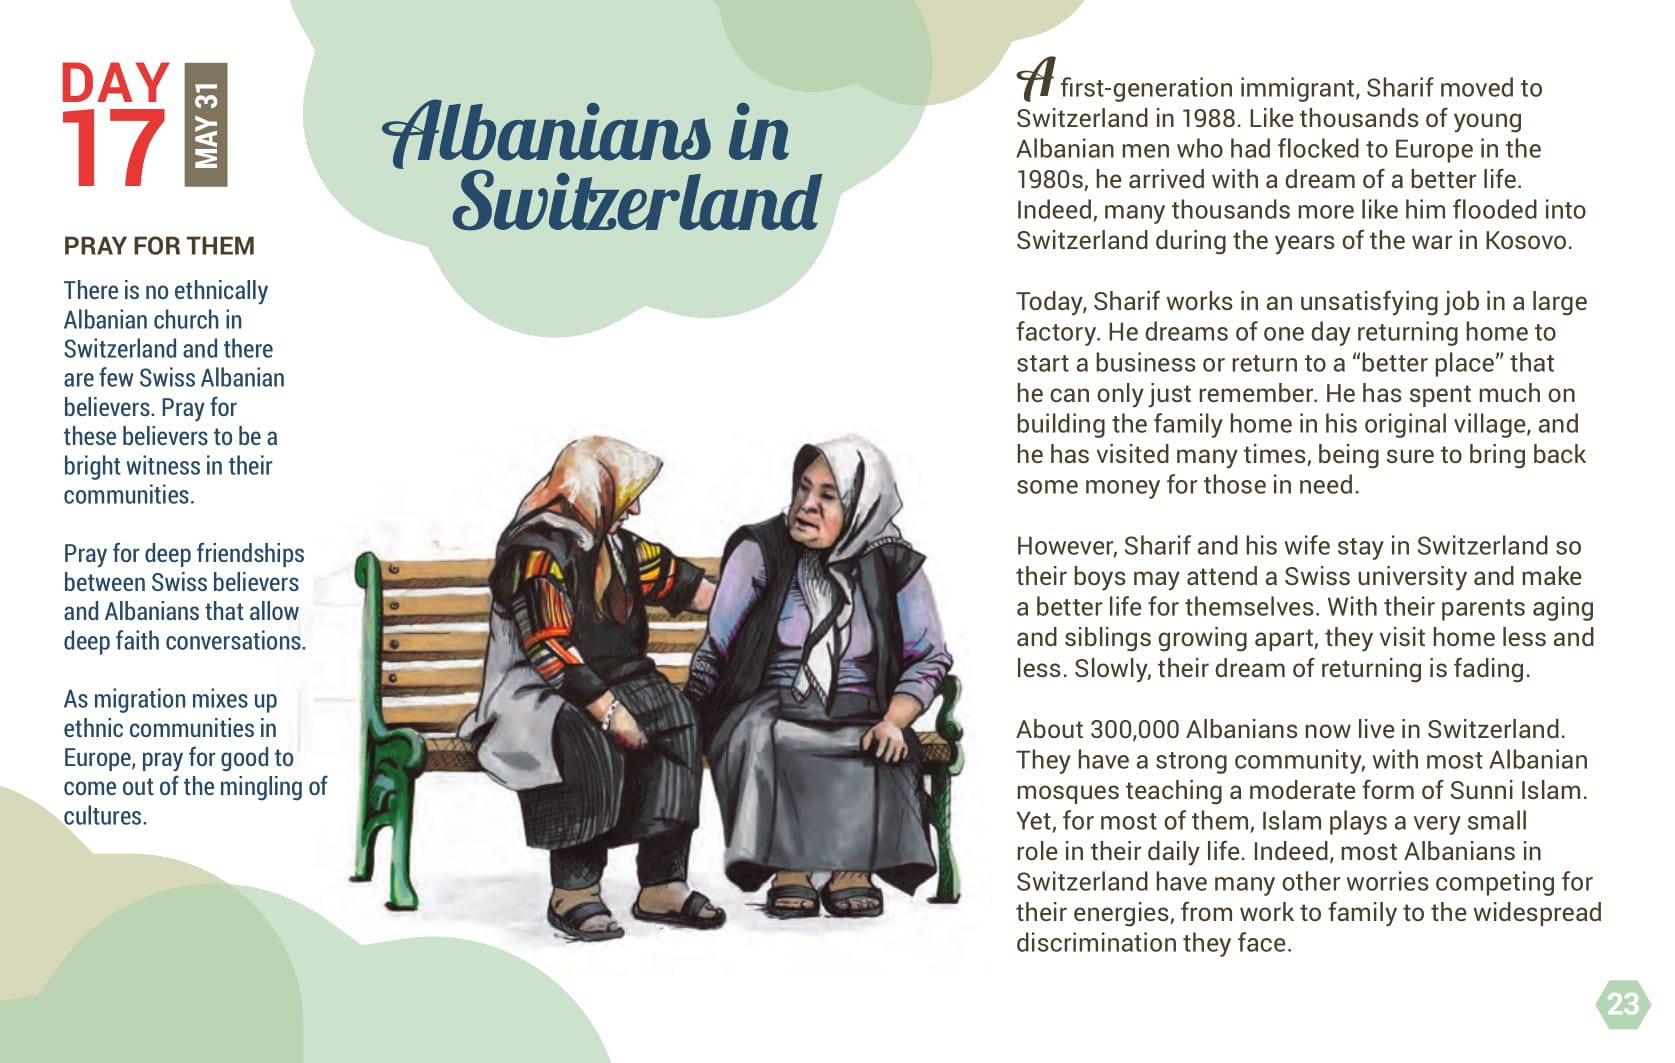 Day 17 - Albanians in Switzerland